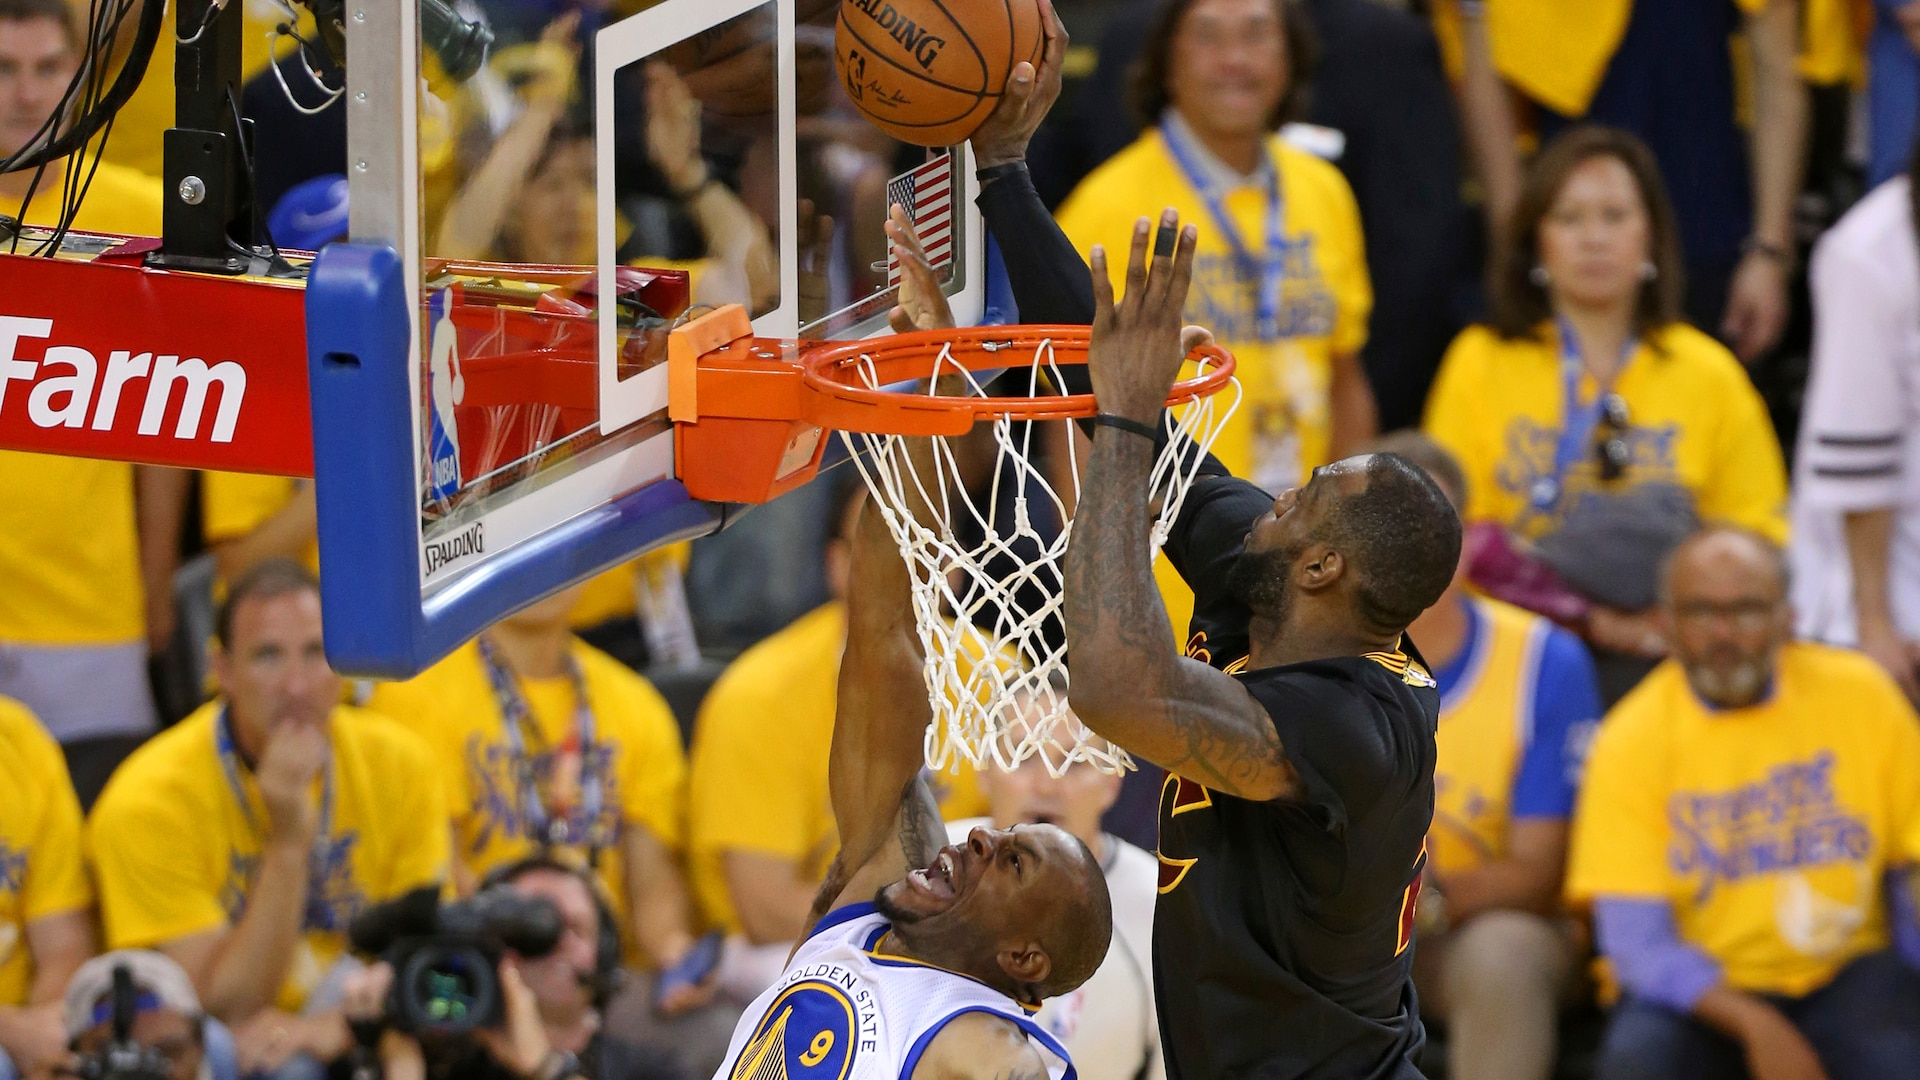 Top NBA Finals moments: LeBron James' chasedown block in Game 7 of 2016 Finals